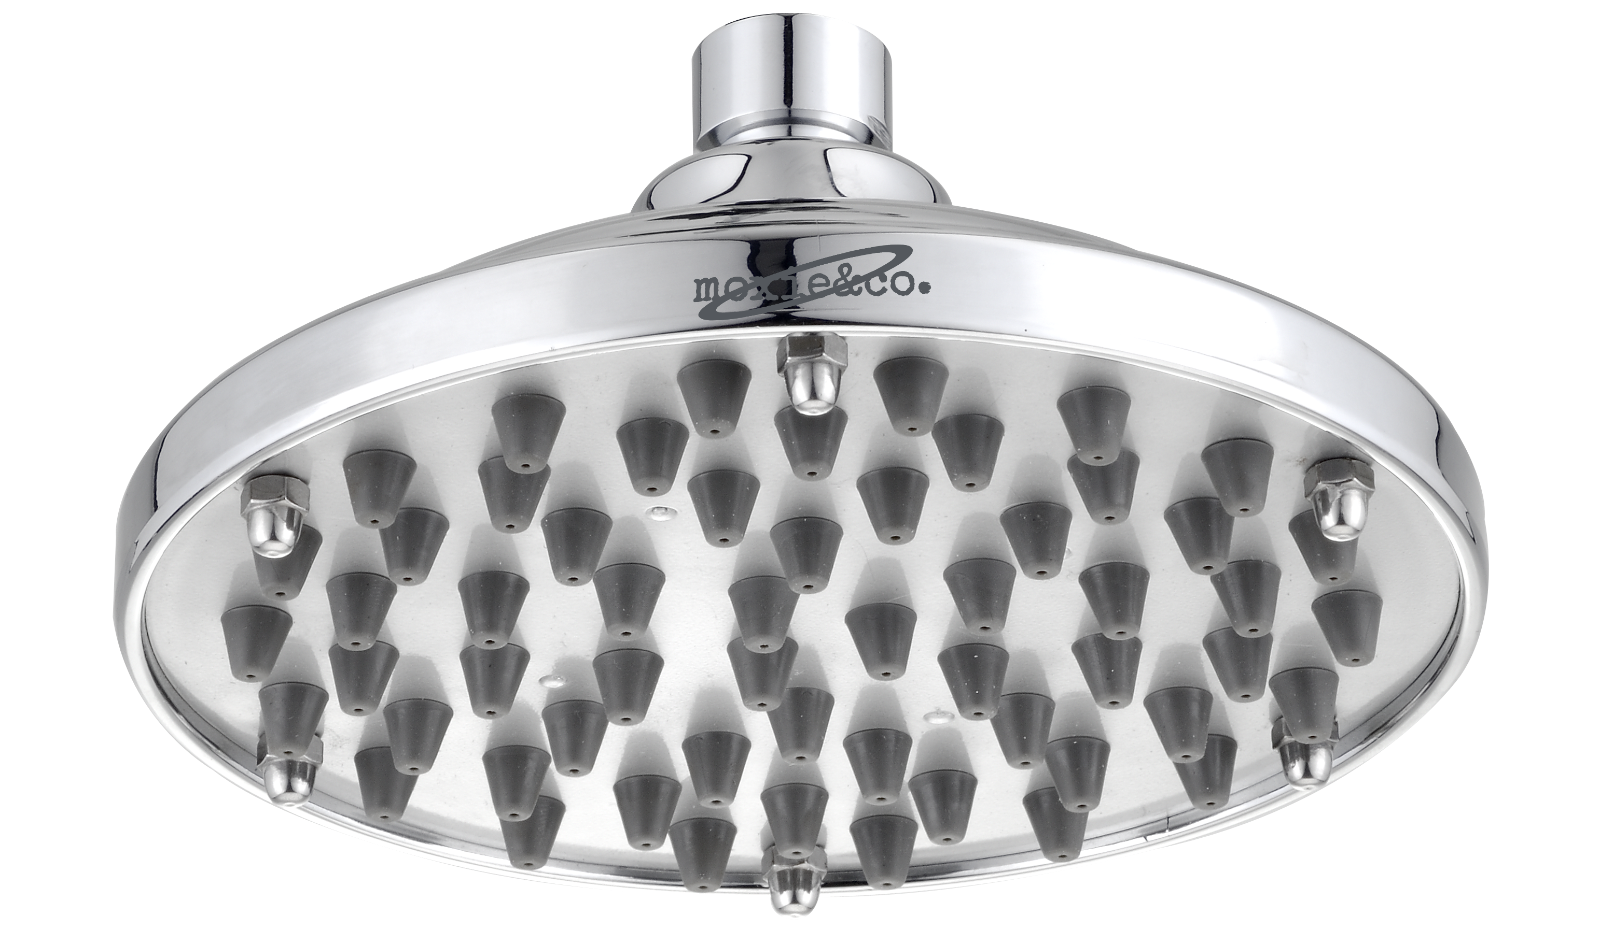 Luxury Rainfall Showerhead You'll Love